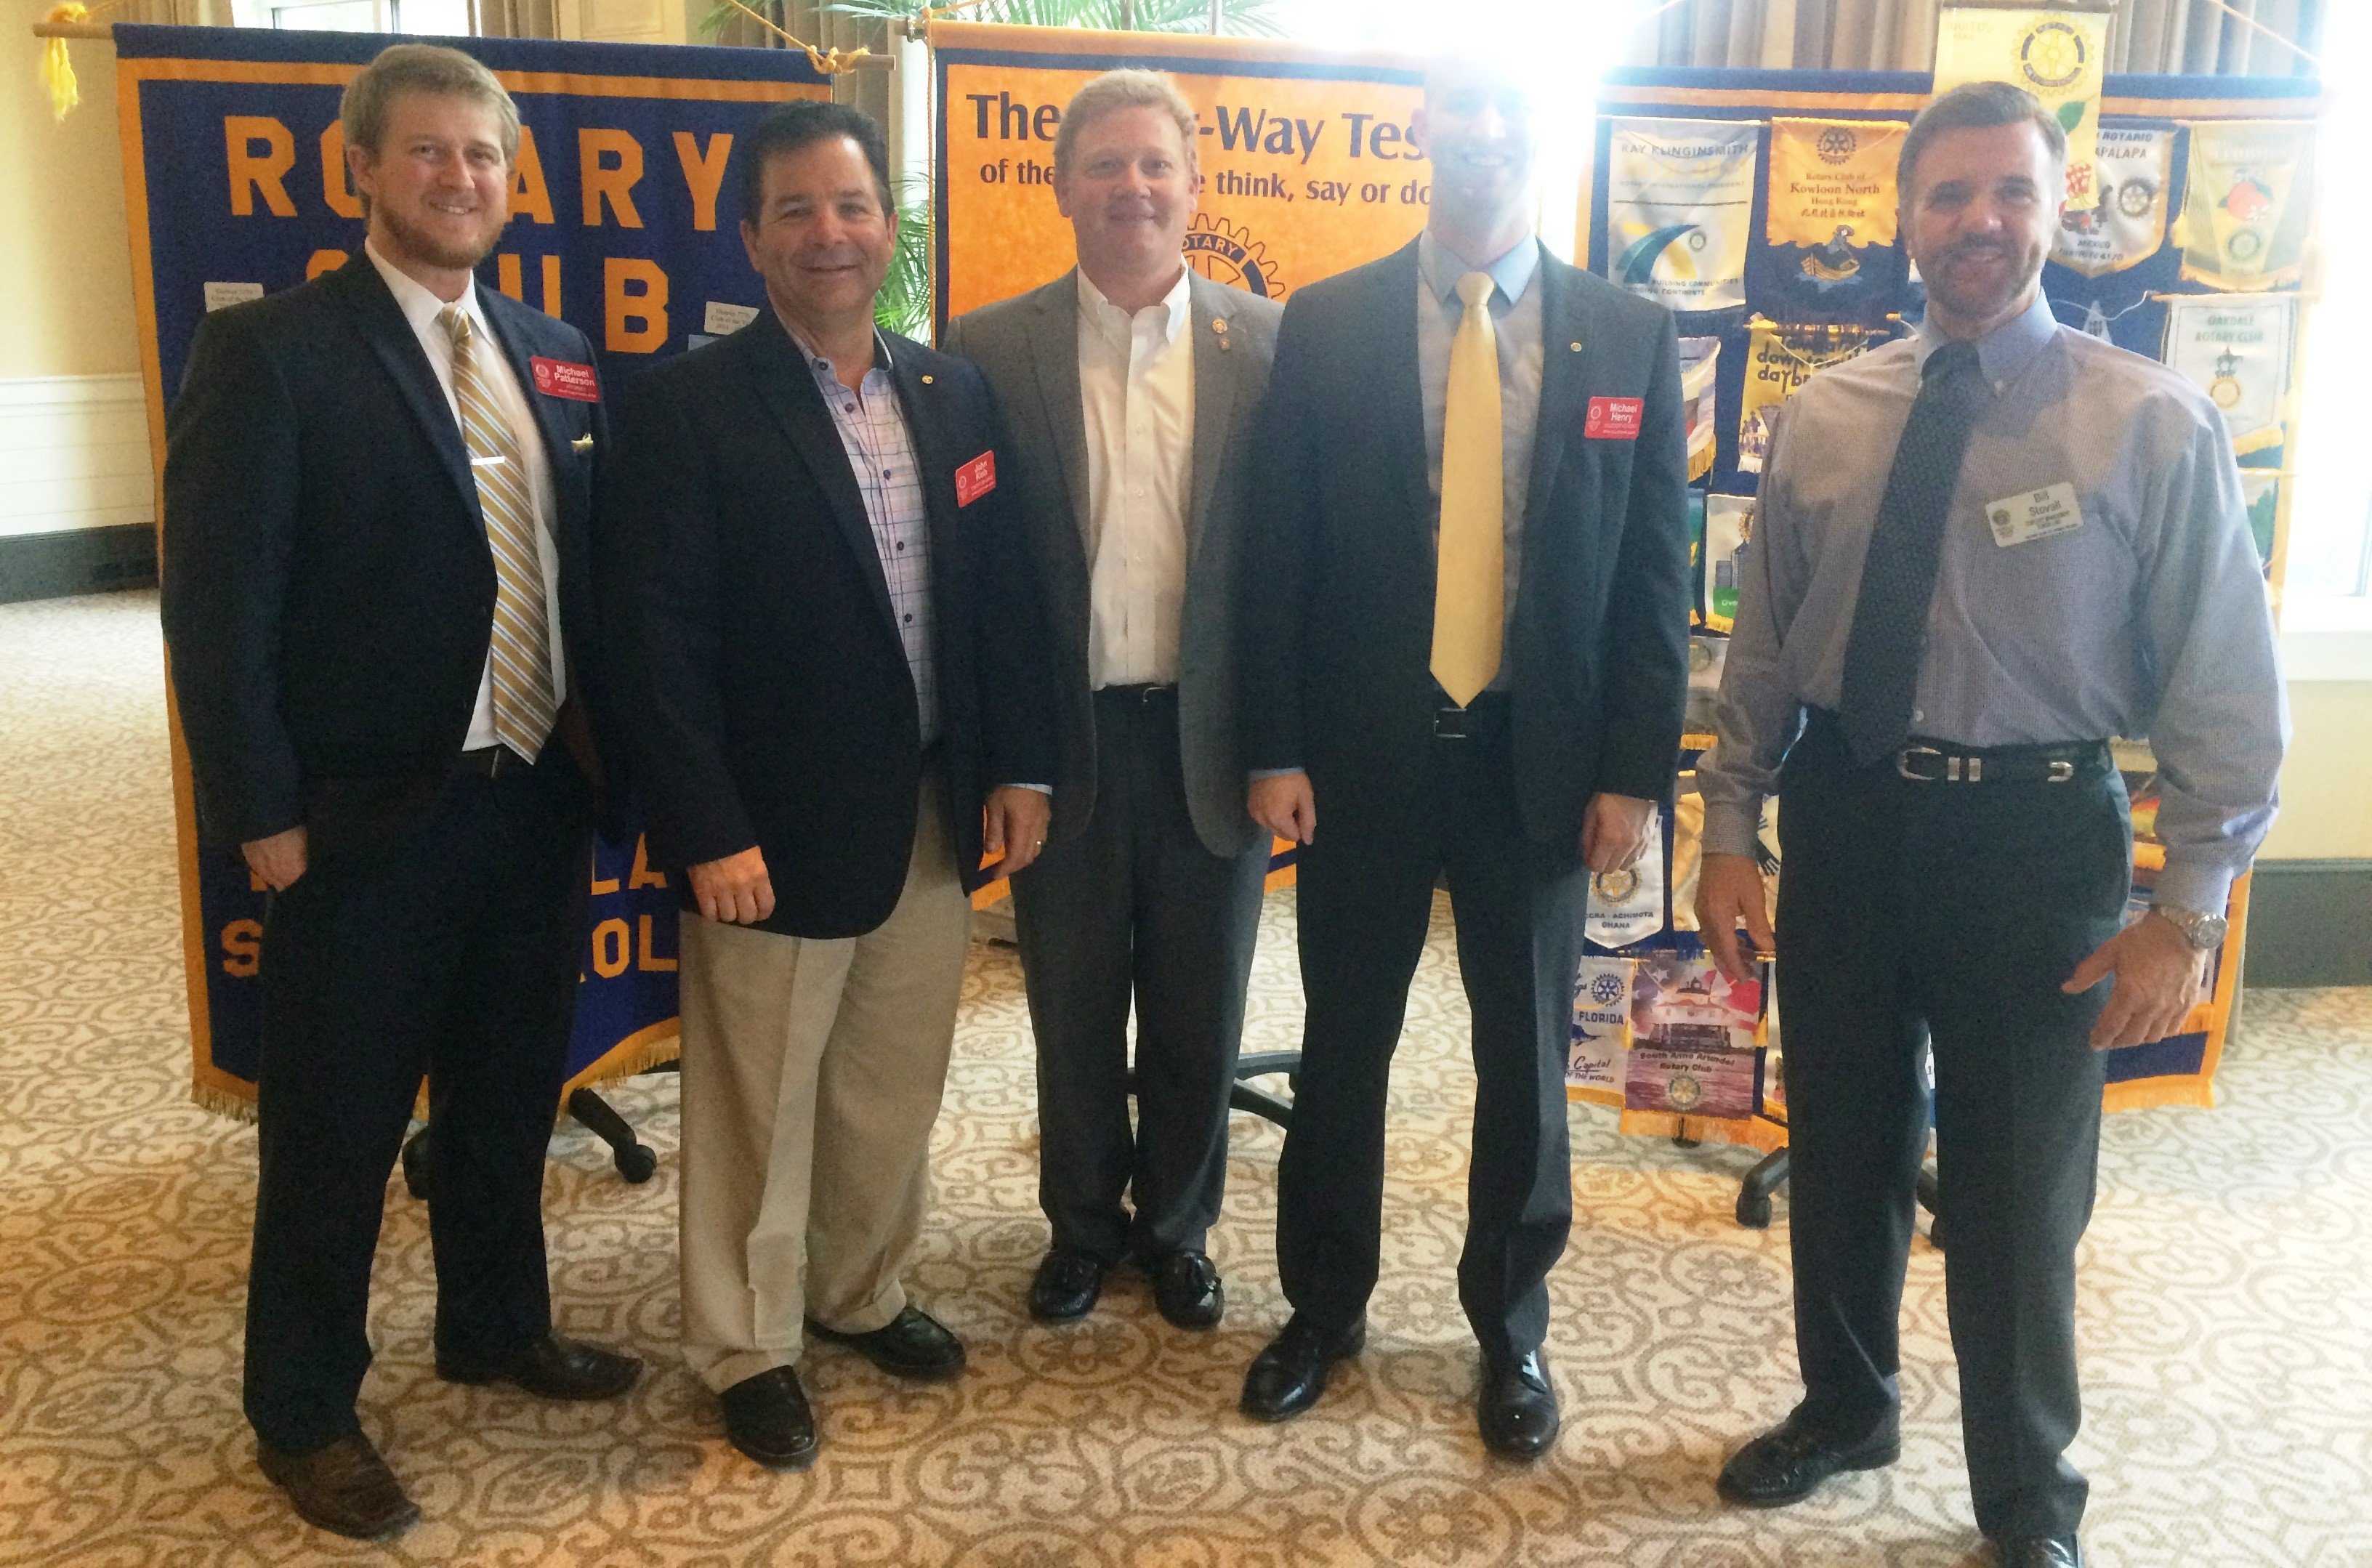 (L to R) Daniel Island Rotarians Michael Patterson, John Kish, Gray Ives, Michael Henry, and Bill Stovali pose at the club's March 1 meeting at the Daniel Island Club. Kish and Henry were both inducted as new members.